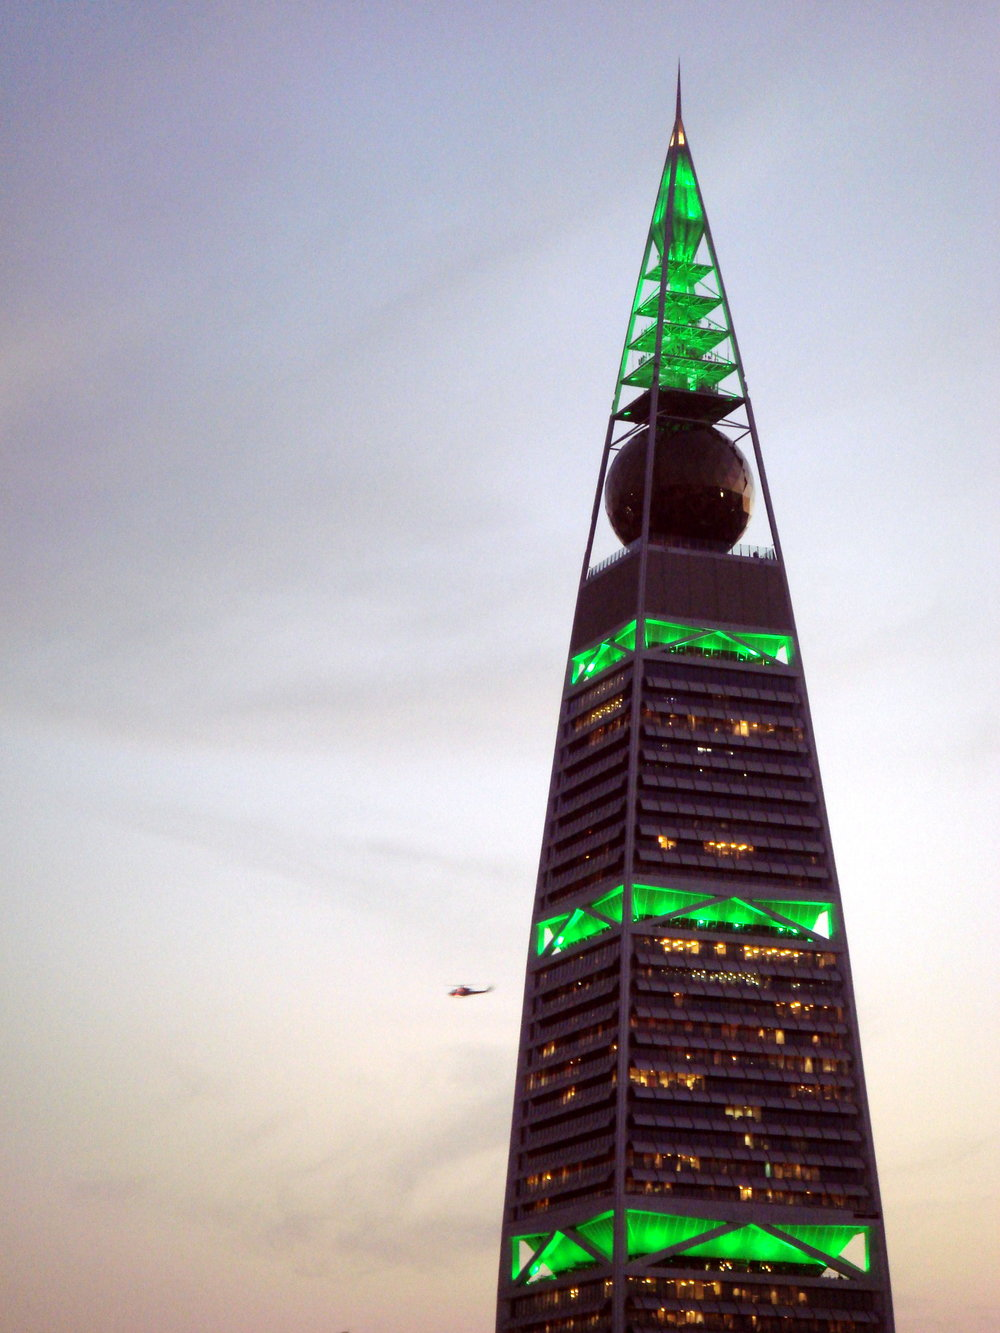 Al Faisaliah Tower, Saudi Arabia